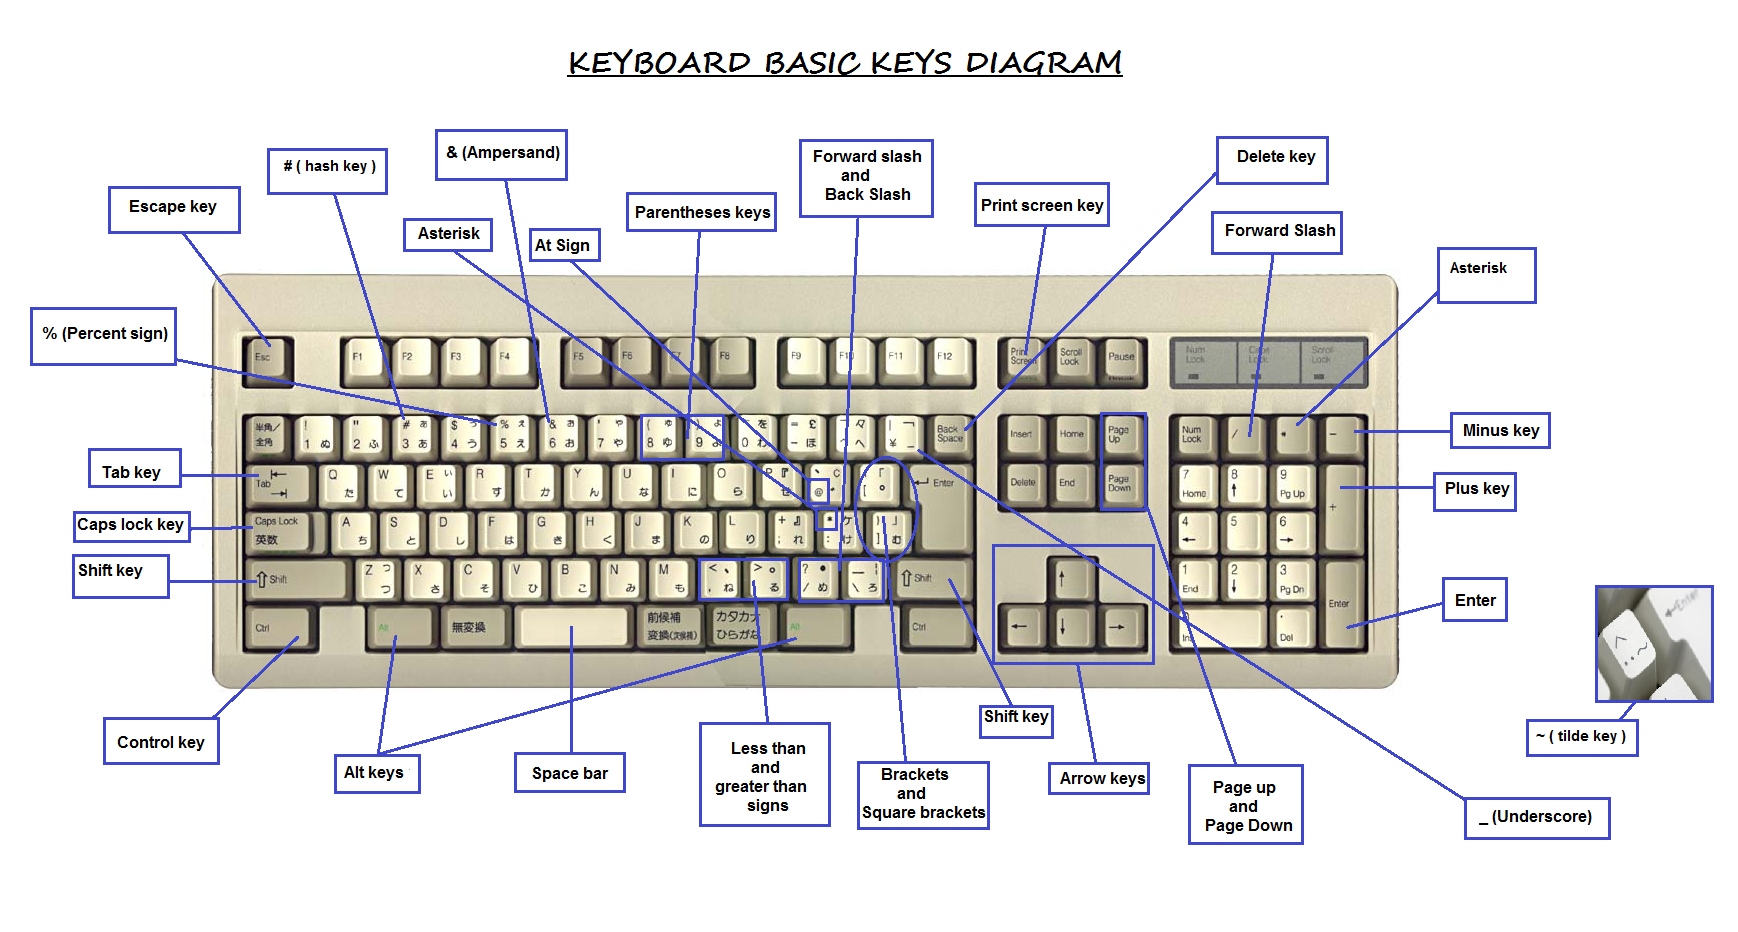 Funny Faces With Keyboard Symbols How To Make Shapes Symbols Using A